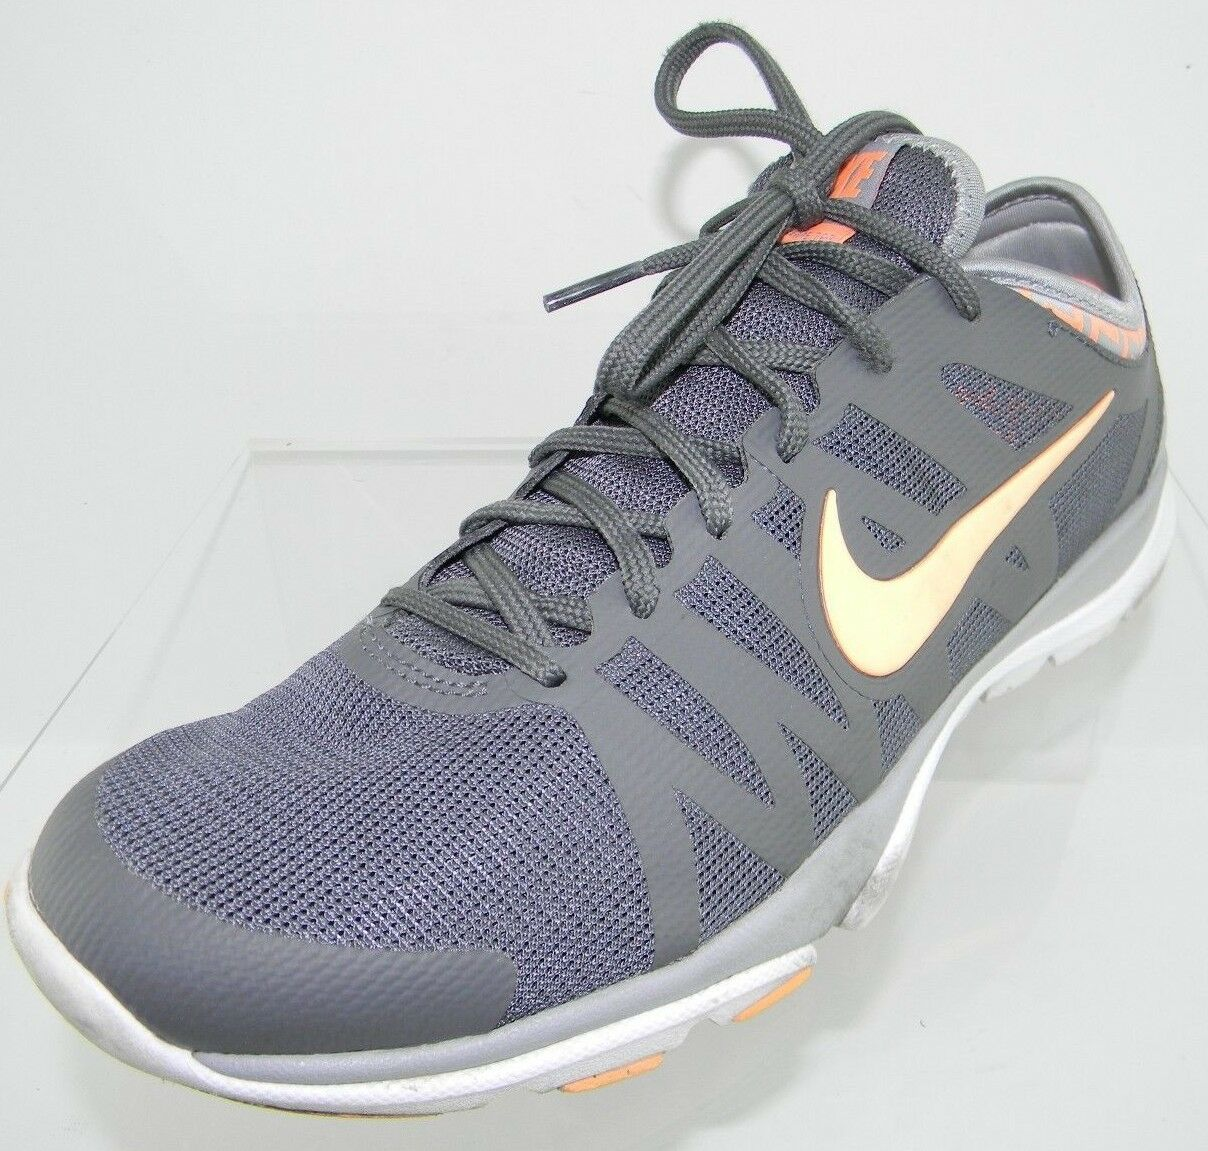 best website 884b2 1bc04 Men Men Men Nike Tr3 Gray Athletic Shoes Size 11 M e2e511